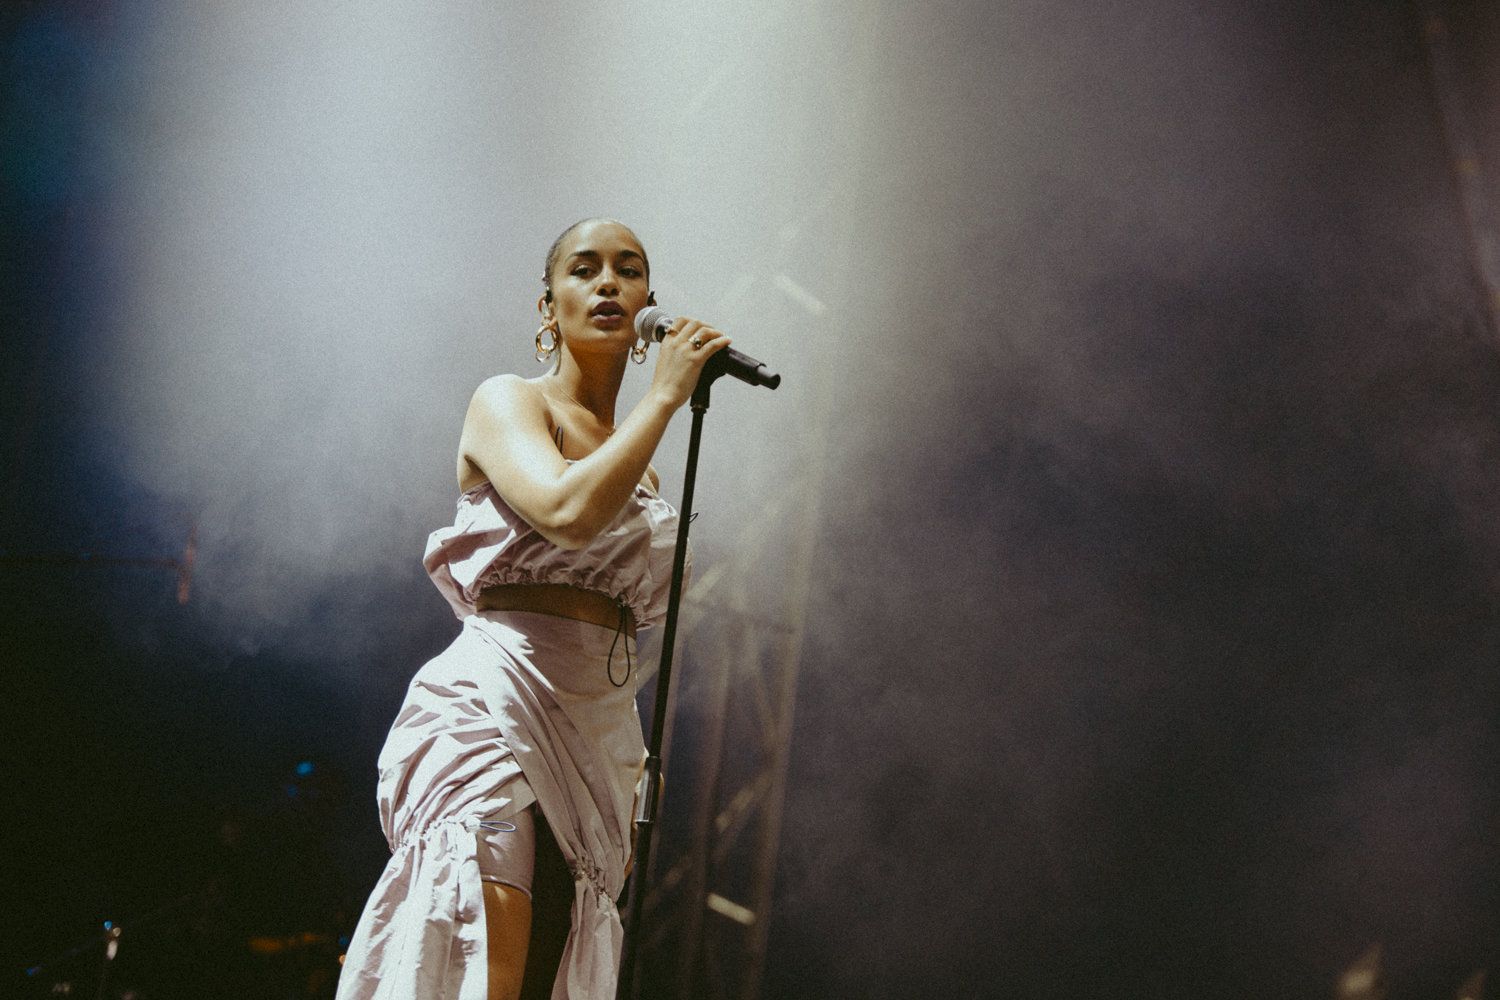 JorjaSmith_EVL-5 - Way Out West 2018 - Emma Viola Lilja